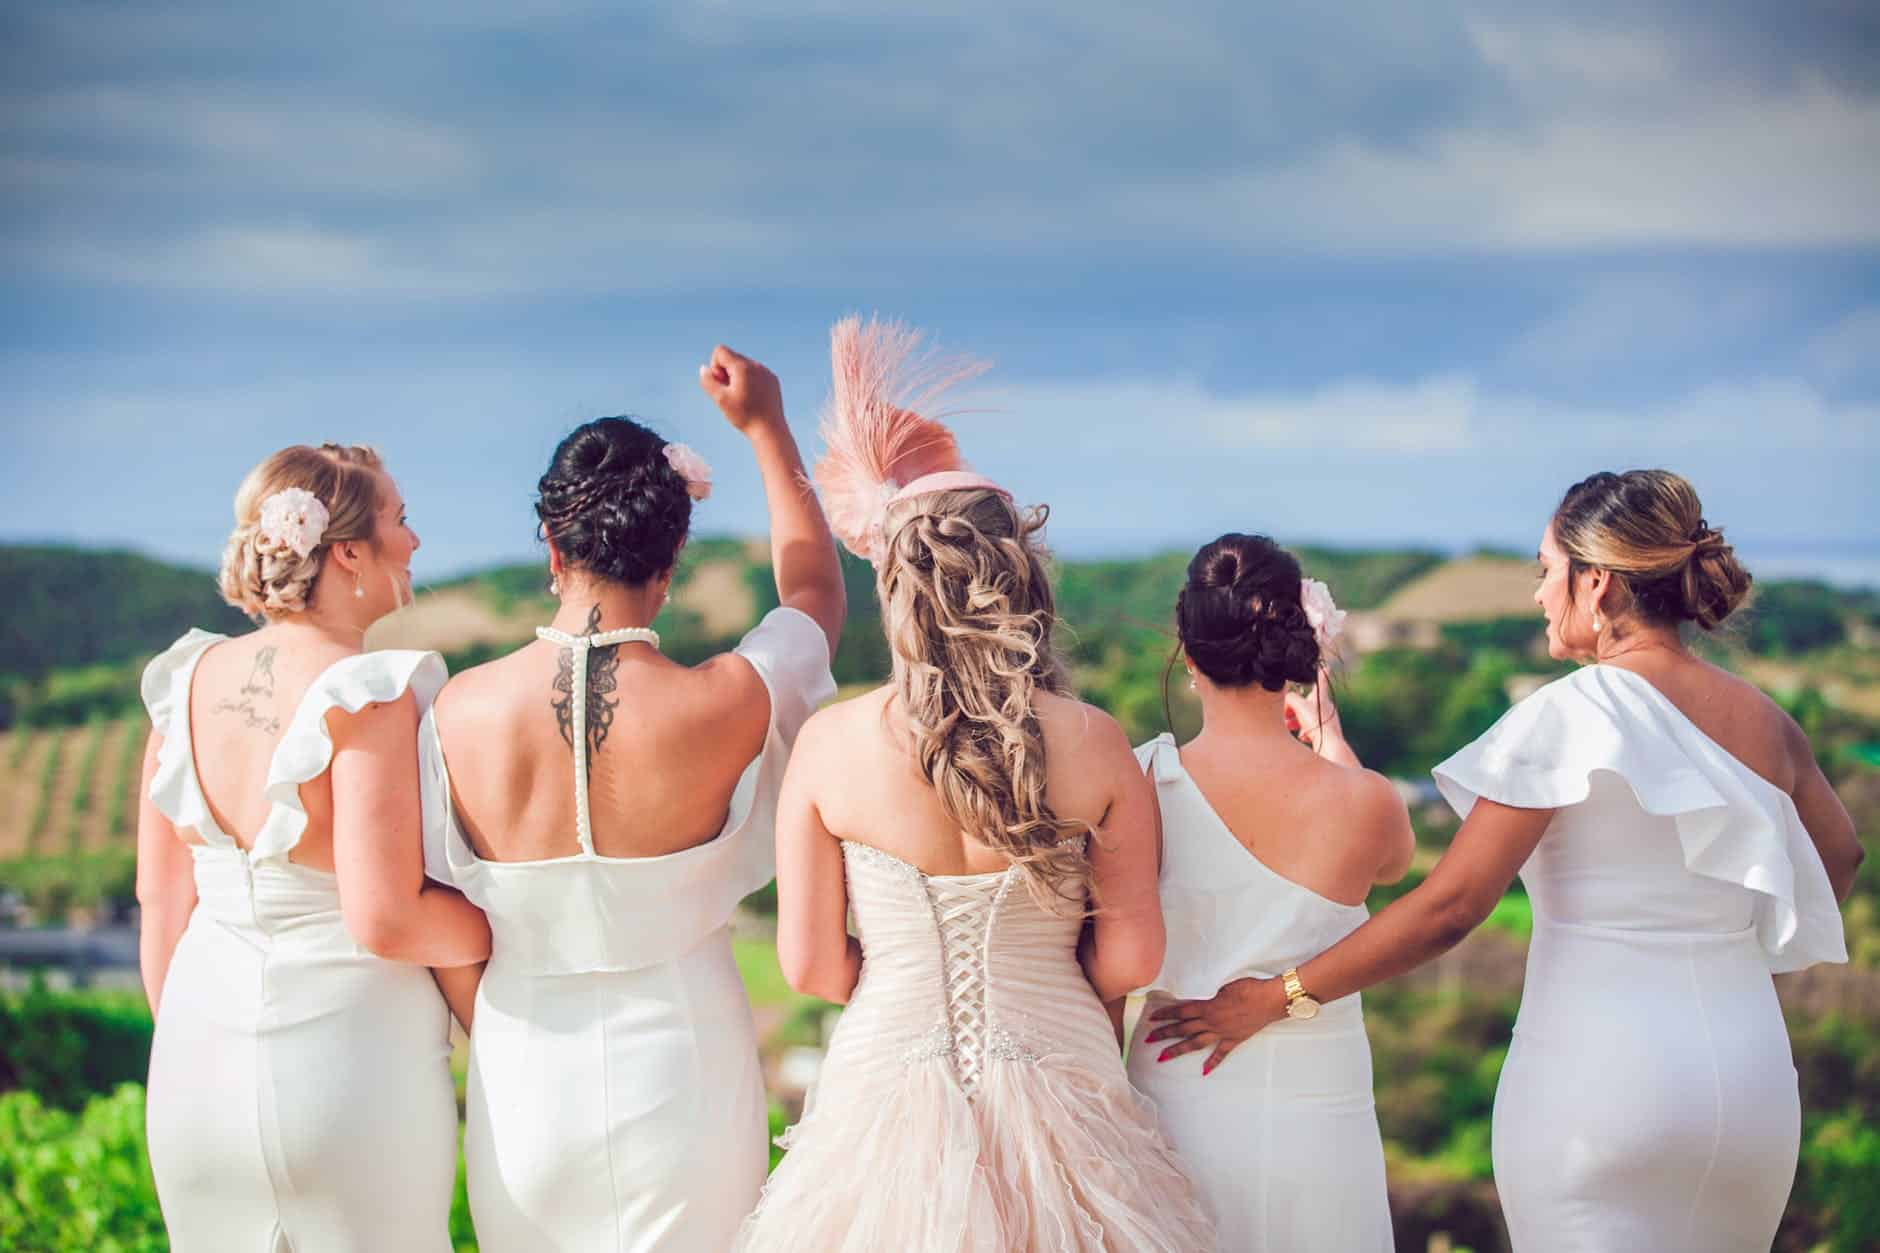 anonymous bridesmaids and bride on hill near plants and trees